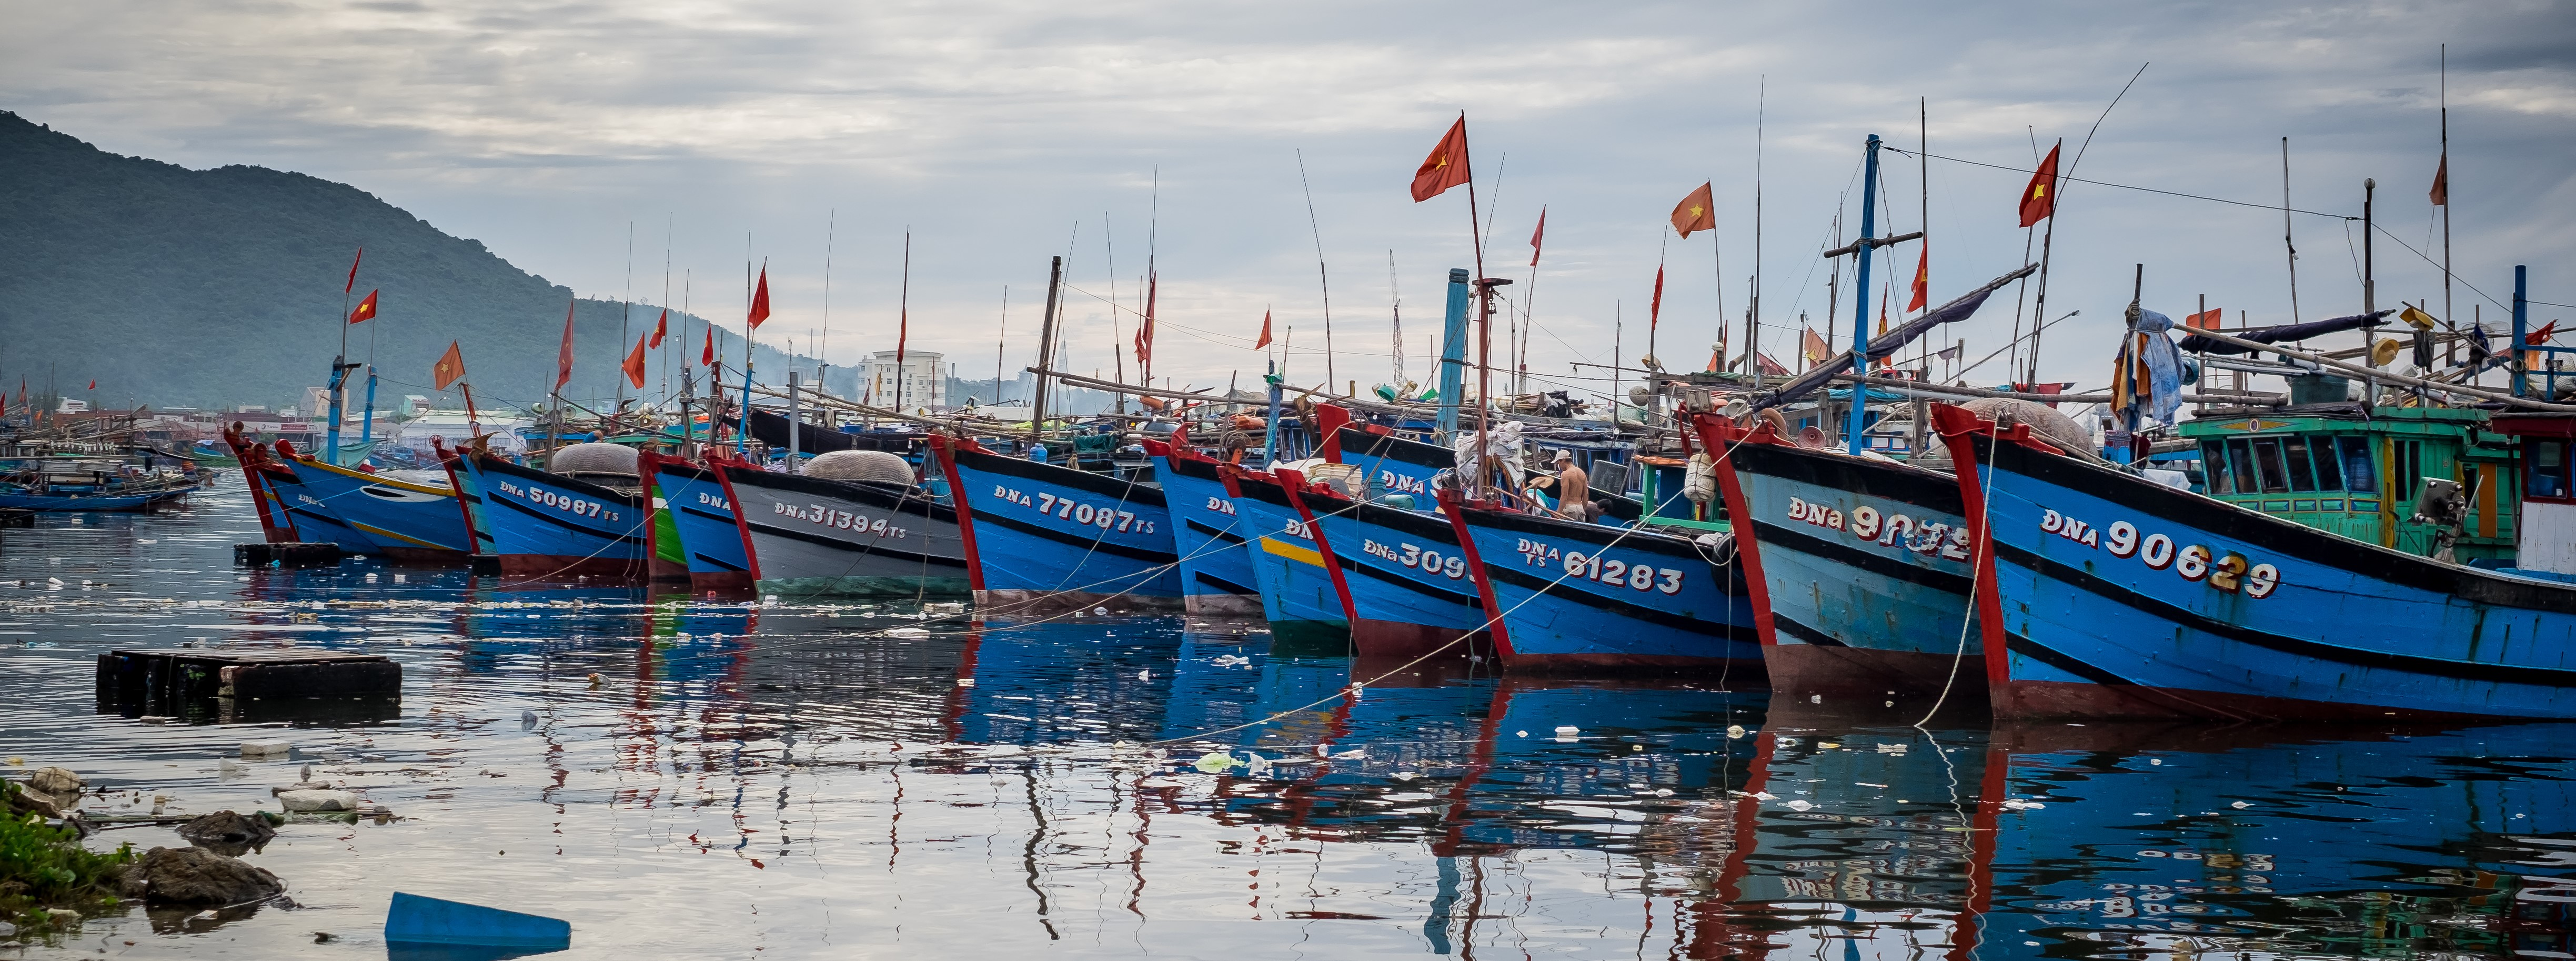 Vietnamese fishing boats pictured in Thuan Phuoc port last year (Photo:  Linh Pham/Getty Images)